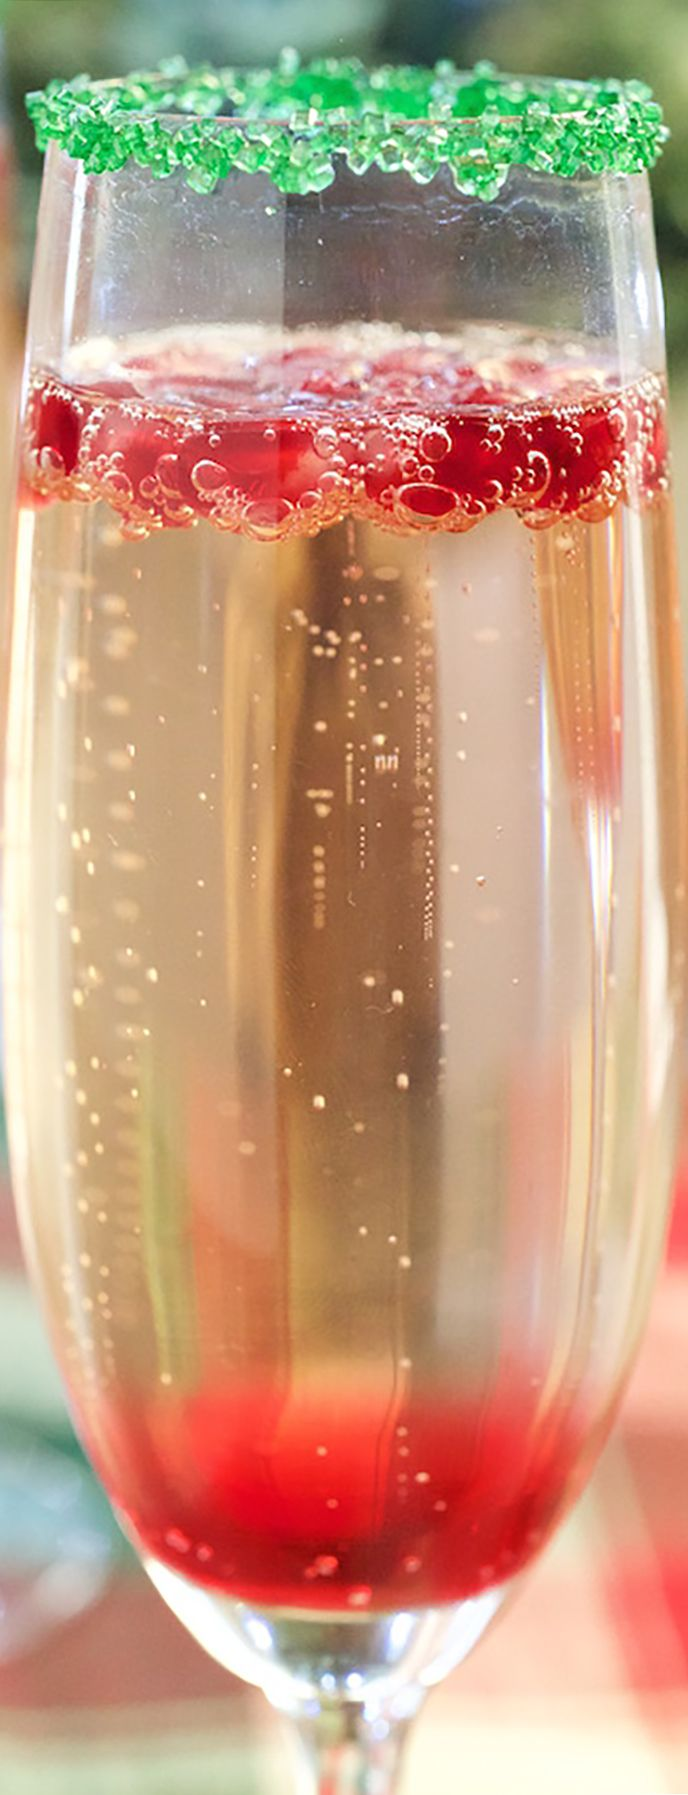 Christmas Cocktail Recipe - Red & Green Christmas Champagne Cocktail Recipe #christmas #christmasrecipes